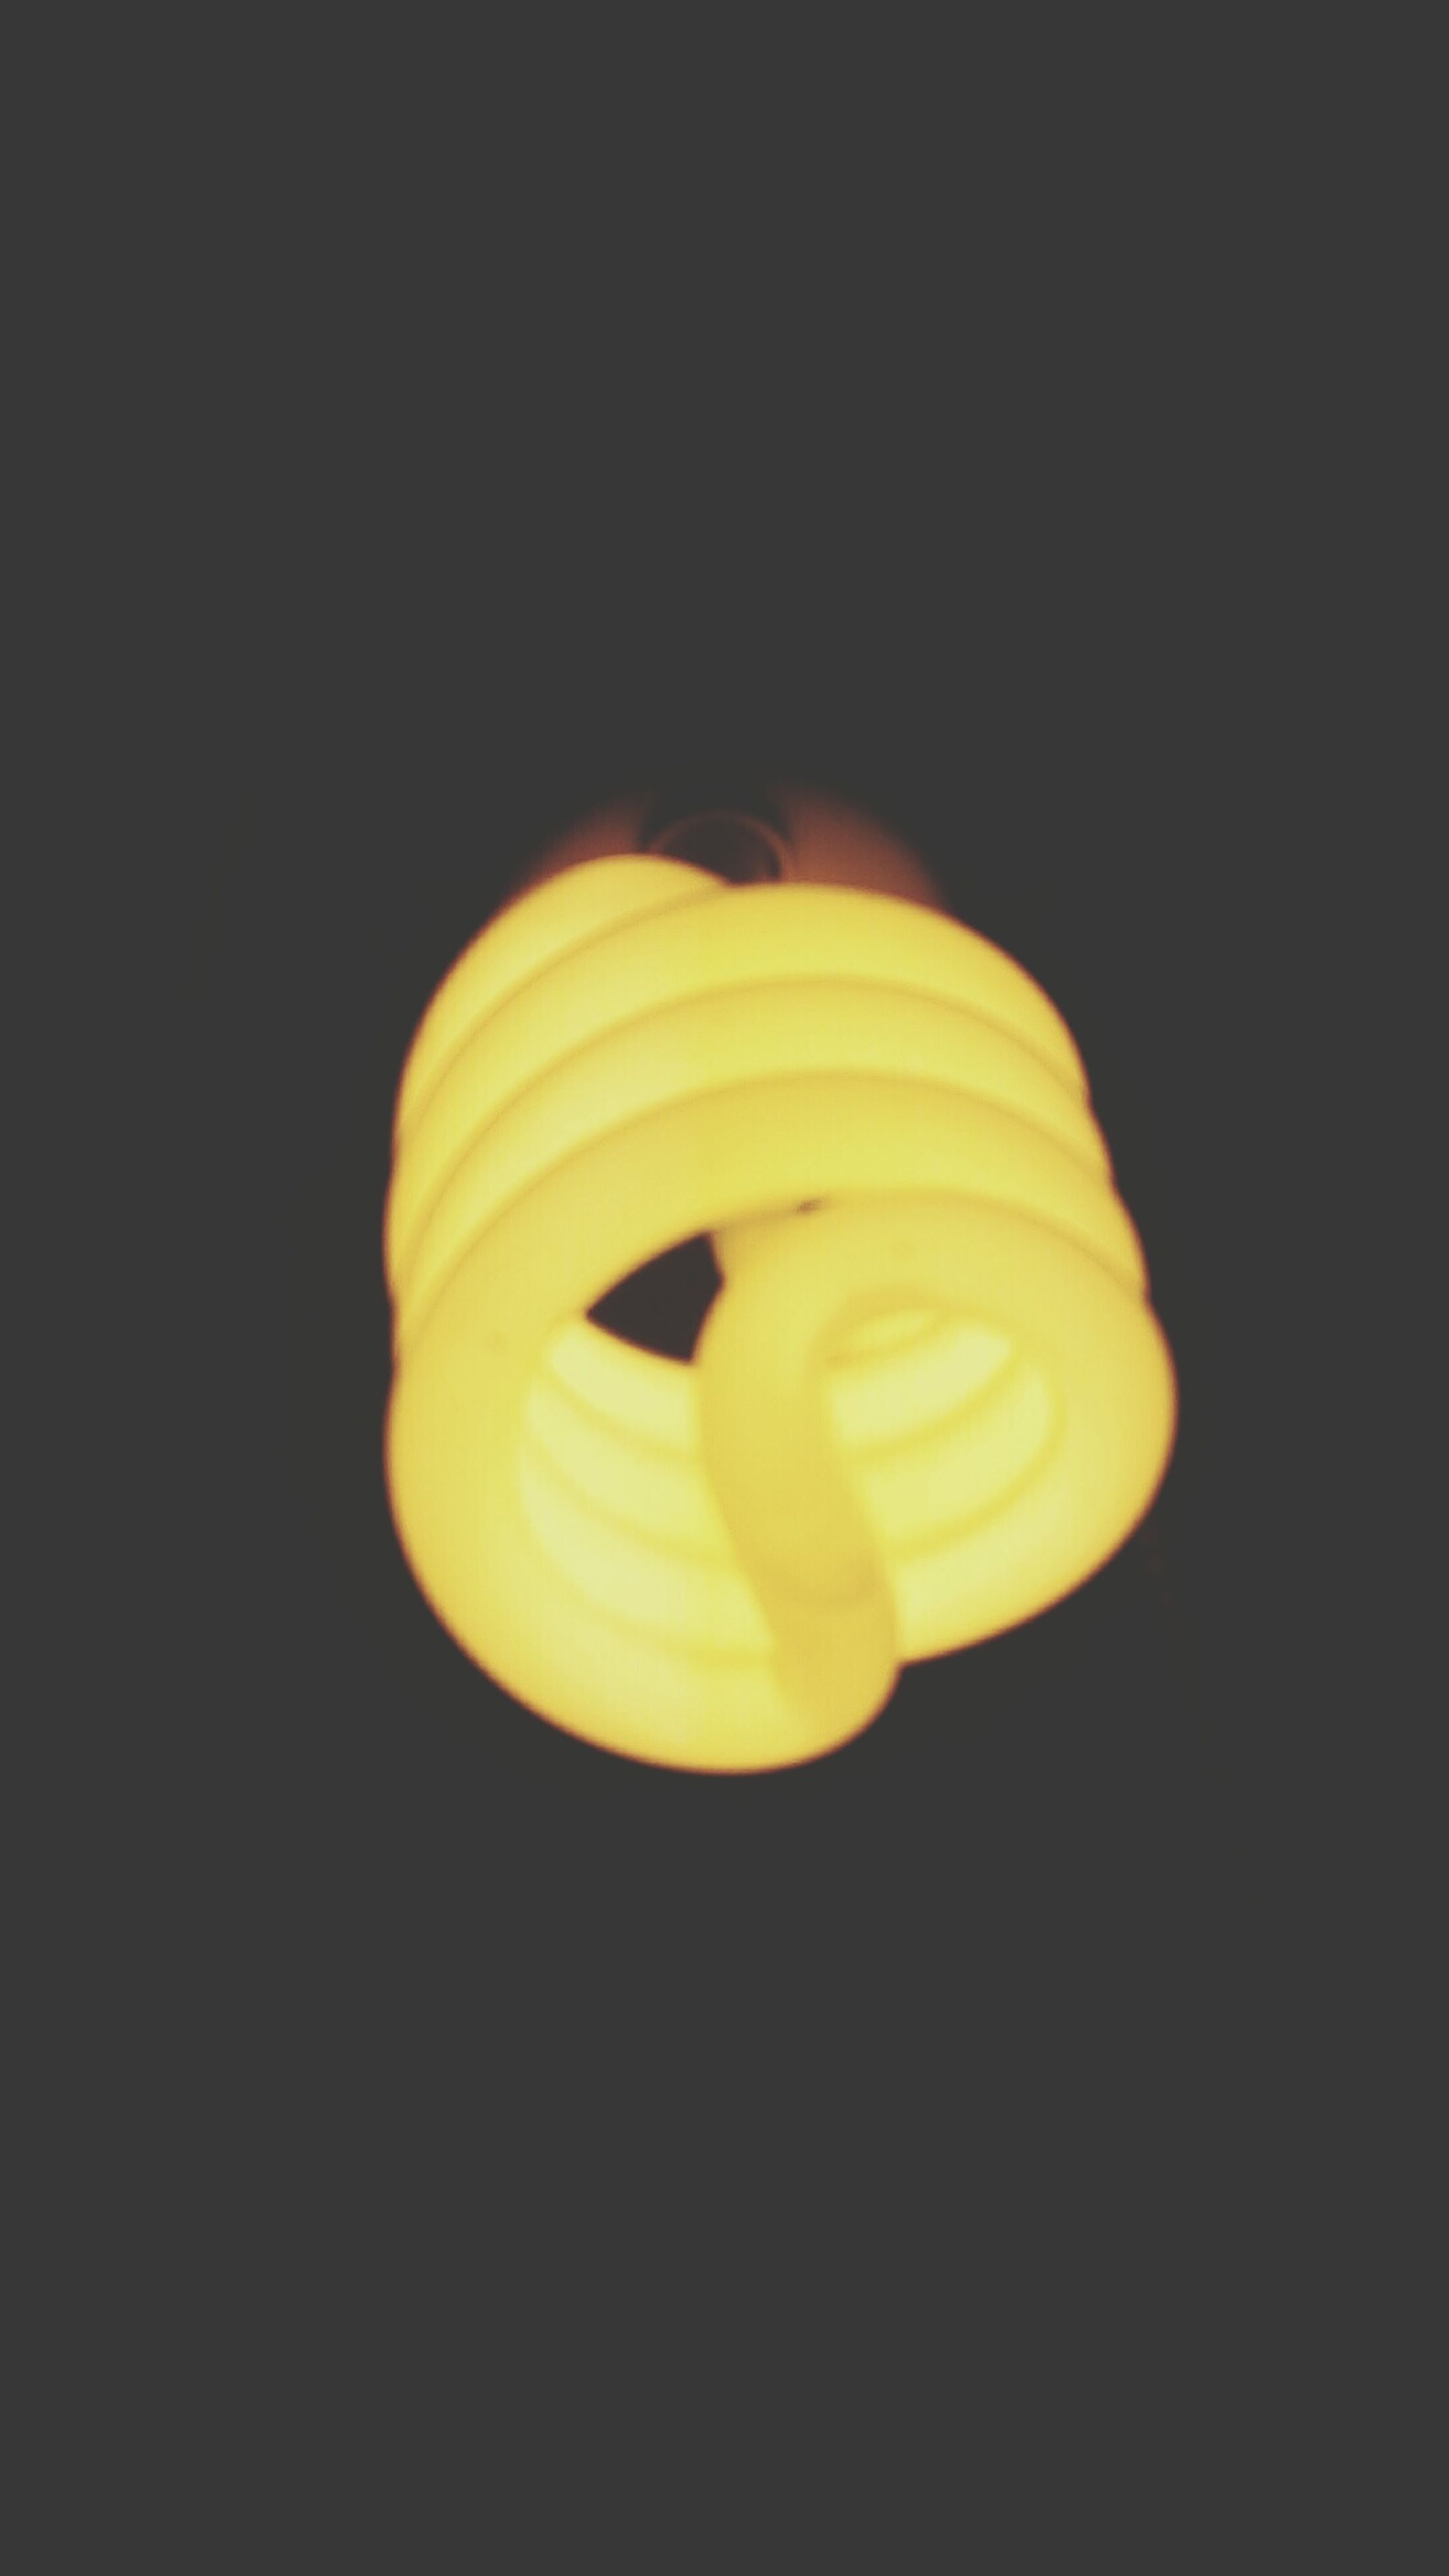 studio shot, black background, copy space, indoors, creativity, close-up, art and craft, still life, art, illuminated, yellow, single object, pattern, circle, shape, no people, design, cut out, orange color, spiral